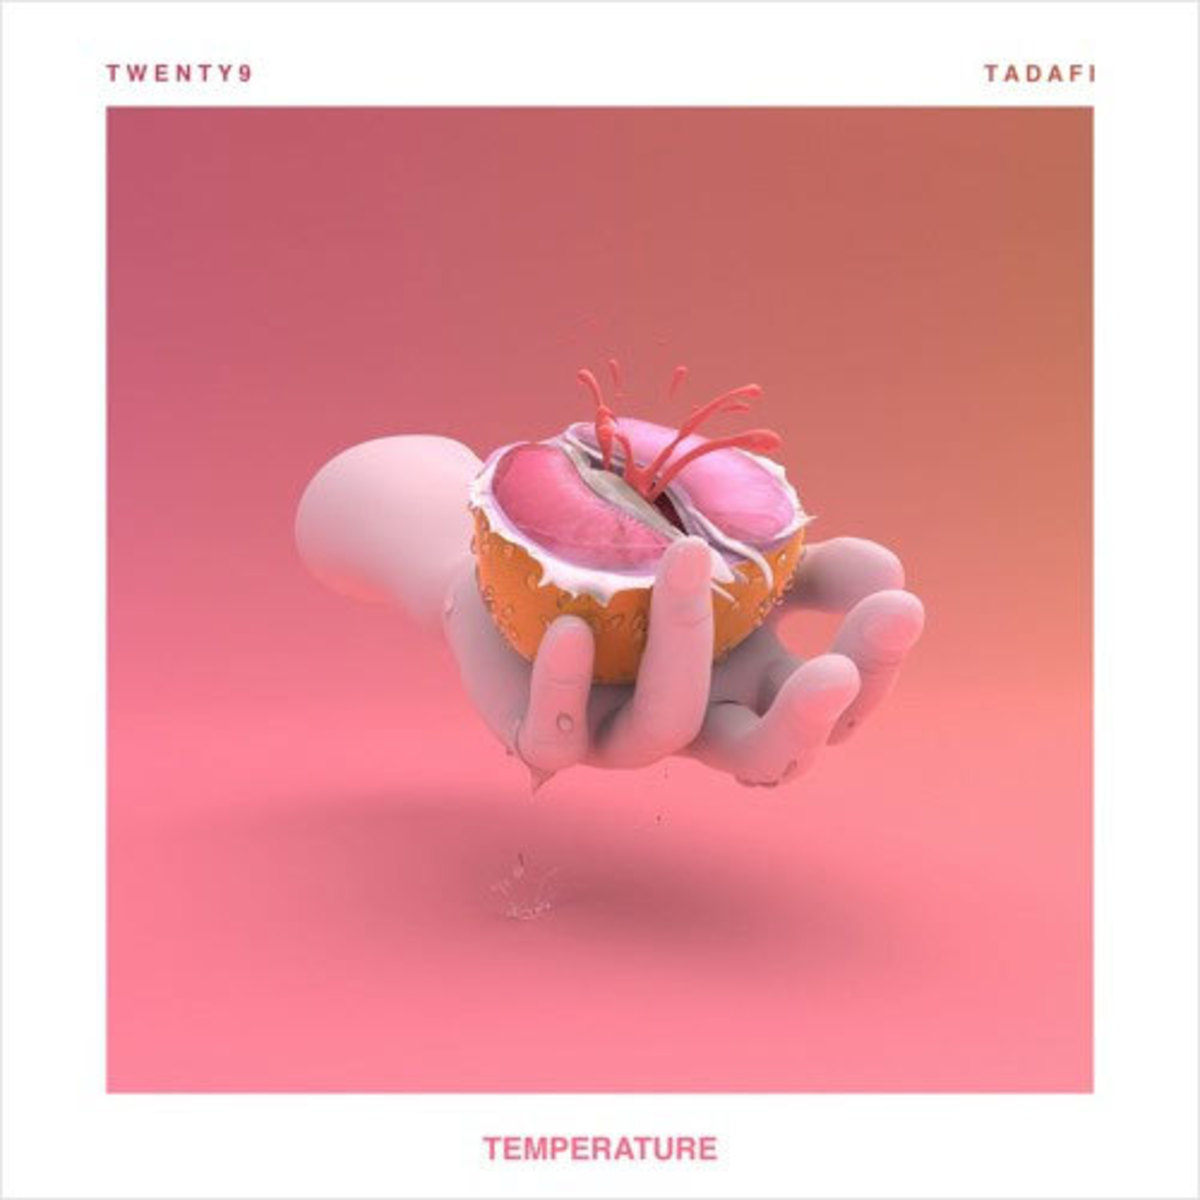 tadafi-temperature.jpg